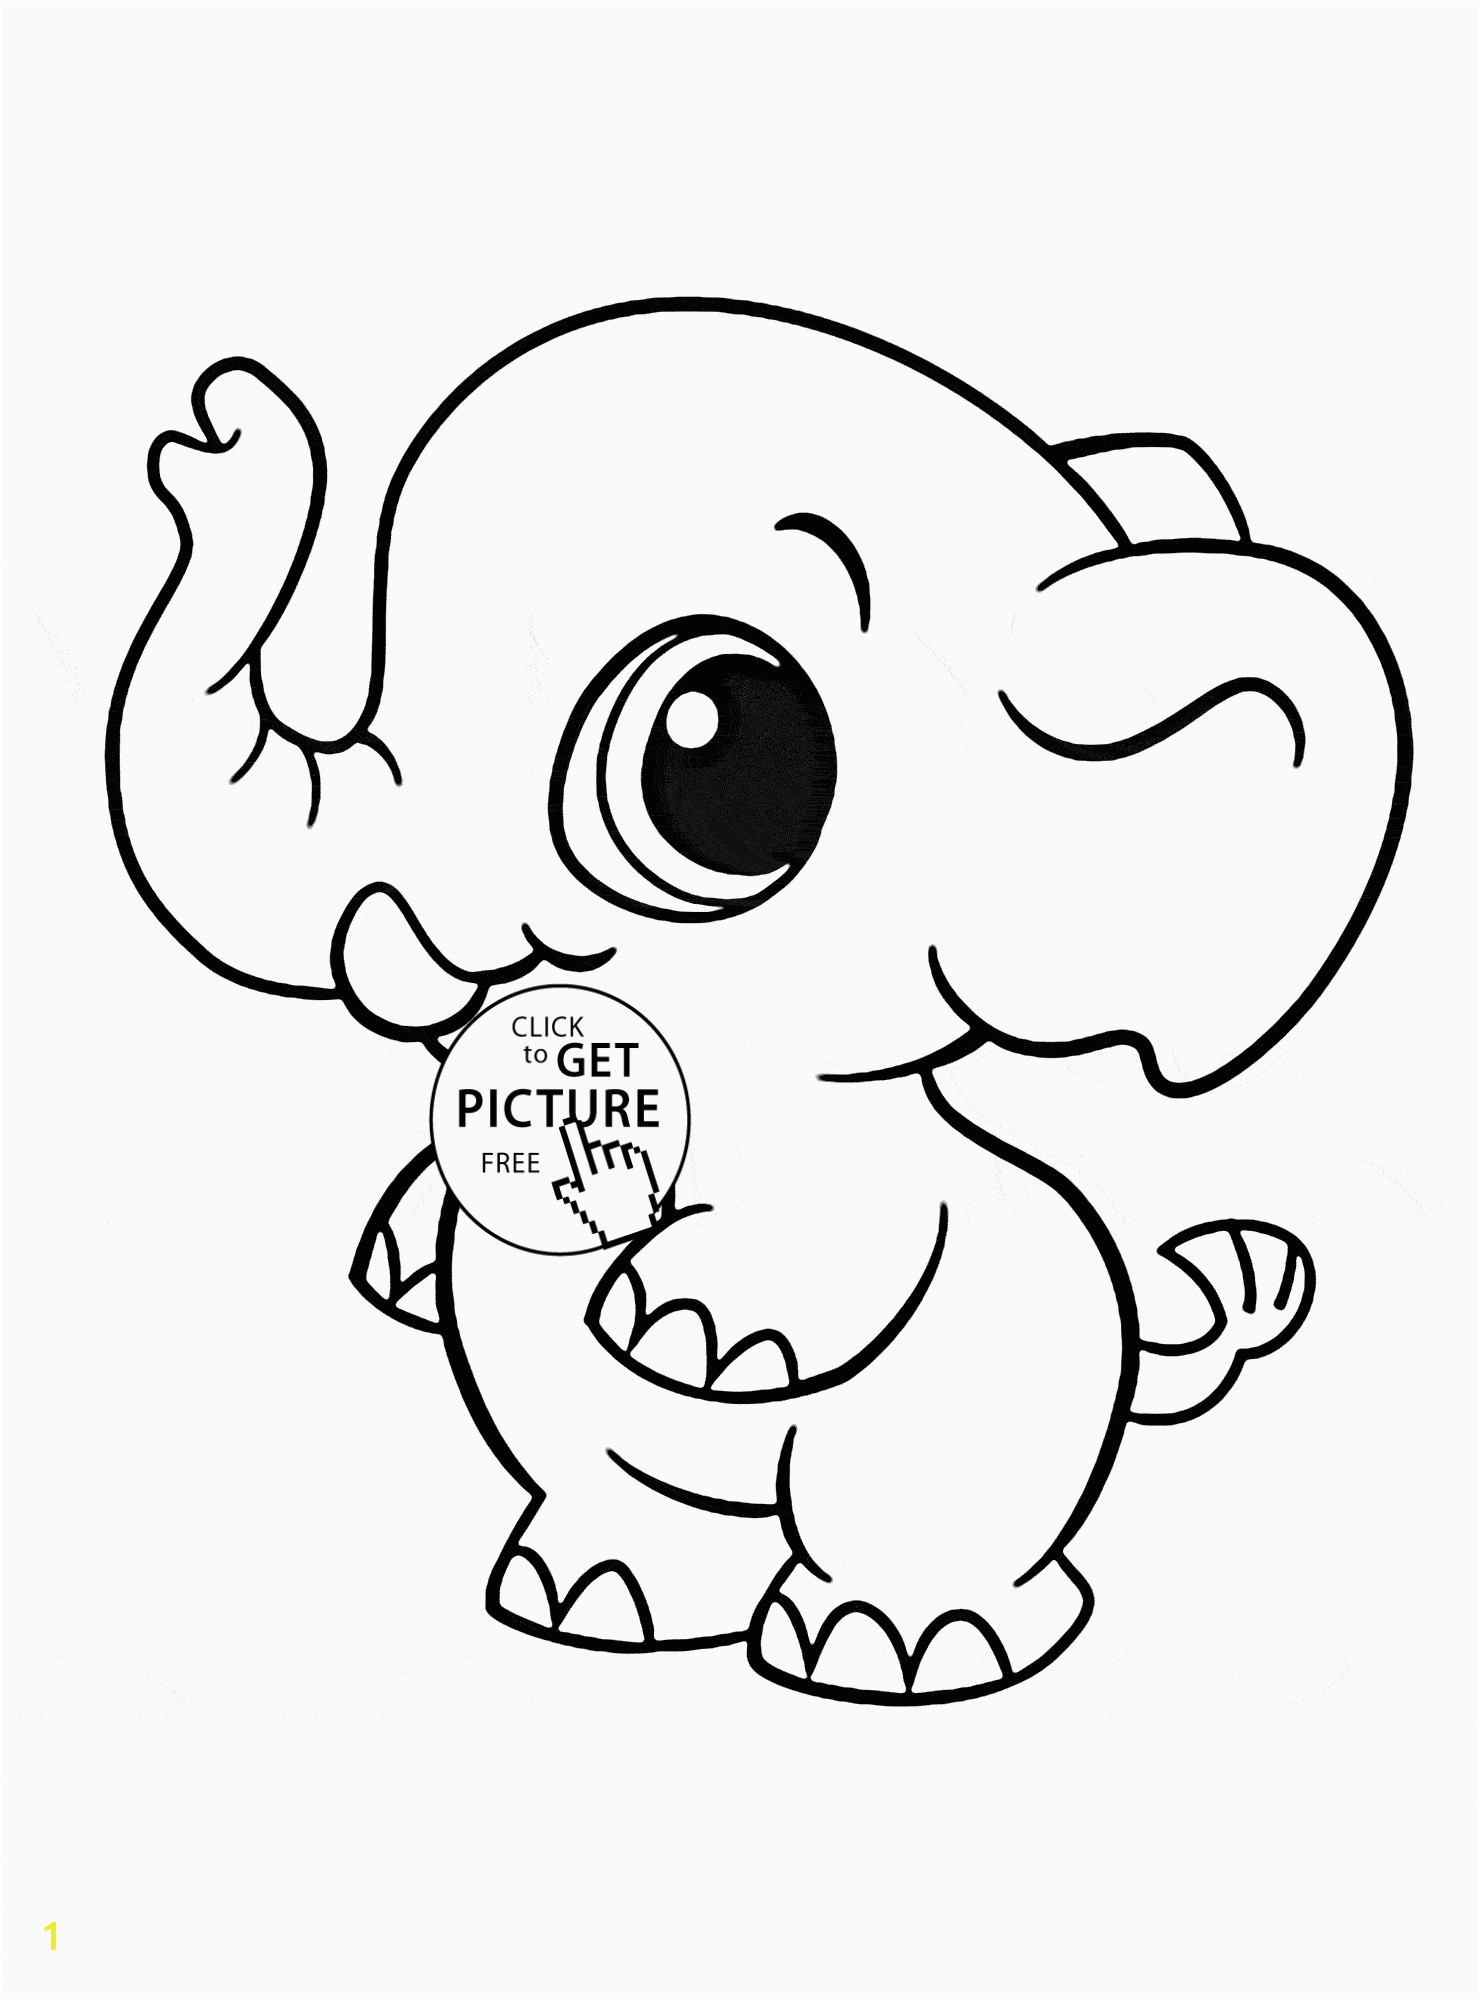 Ballon Coloring Page Best Balloon Coloring Pages Inspirational Drawing Printables 0d Archives Ballon Coloring